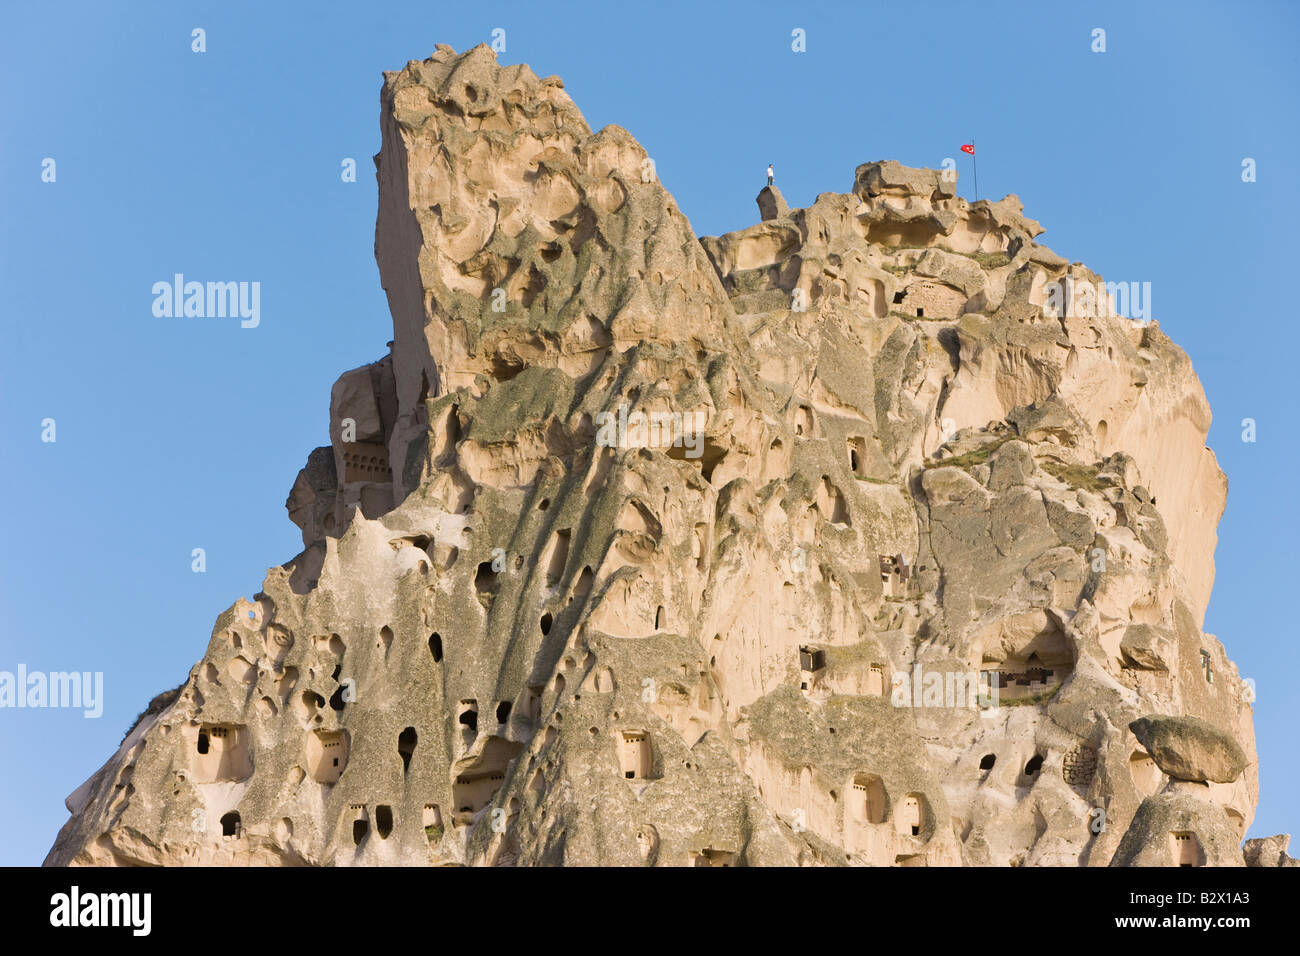 Old troglodytic cave dwellings and the rock Castle of Uchisar, Cappadocia, Anatolia, Turkey - Stock Image